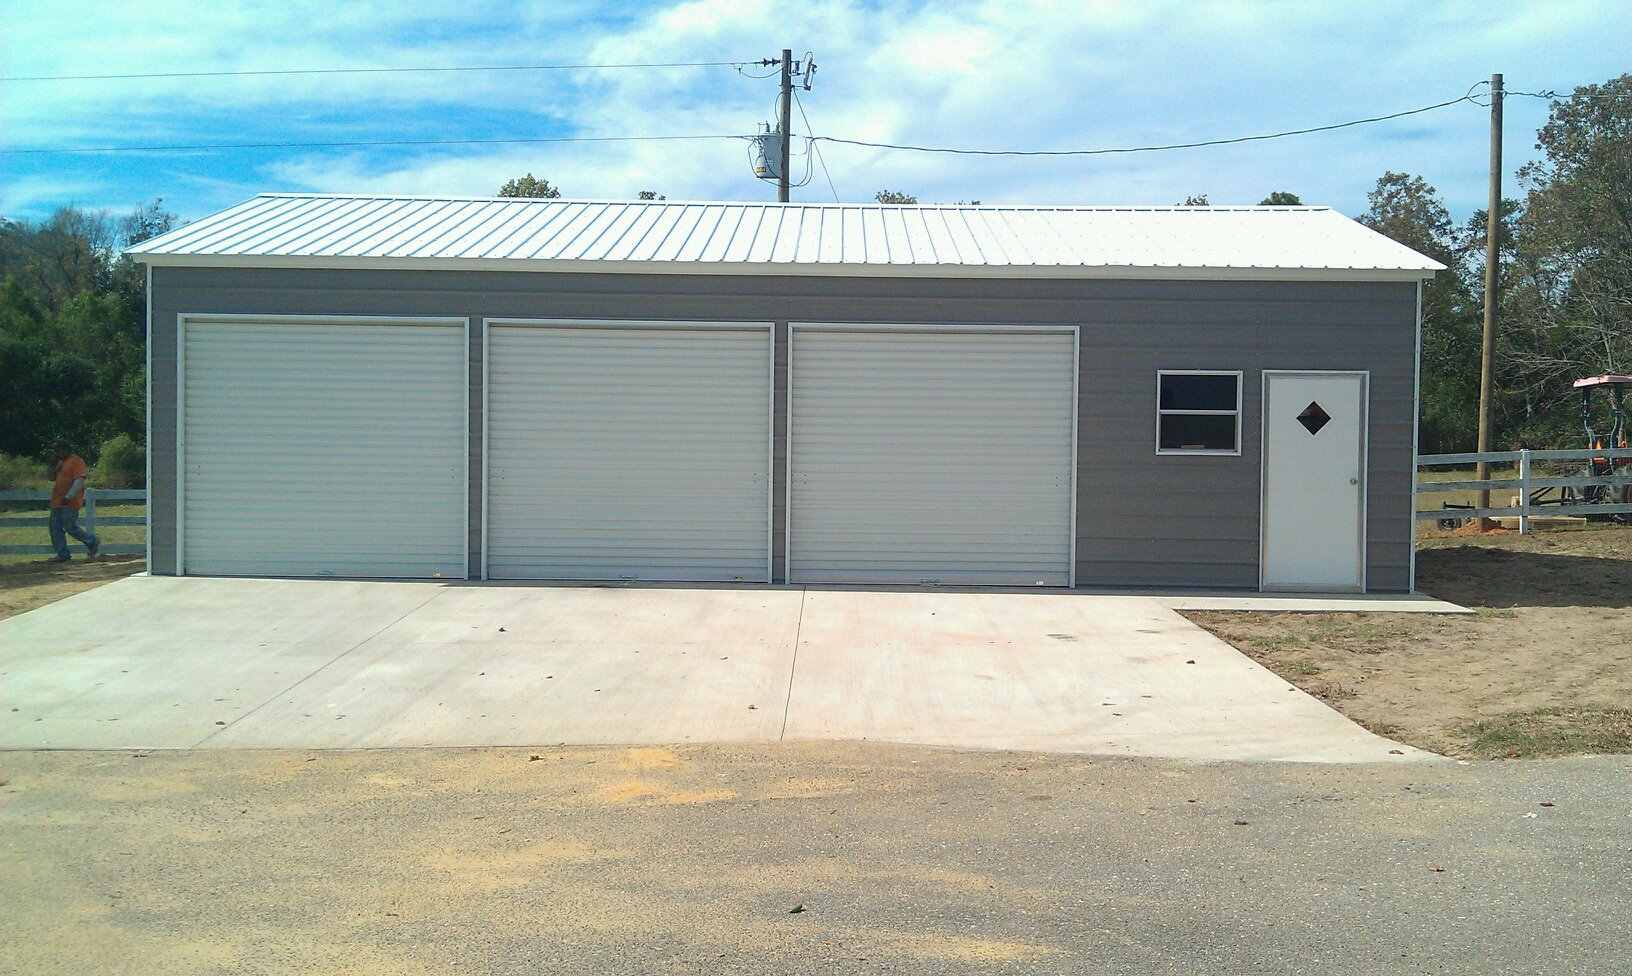 Tennessee tn metal garages barns sheds and buildings for 3 bay garage cost